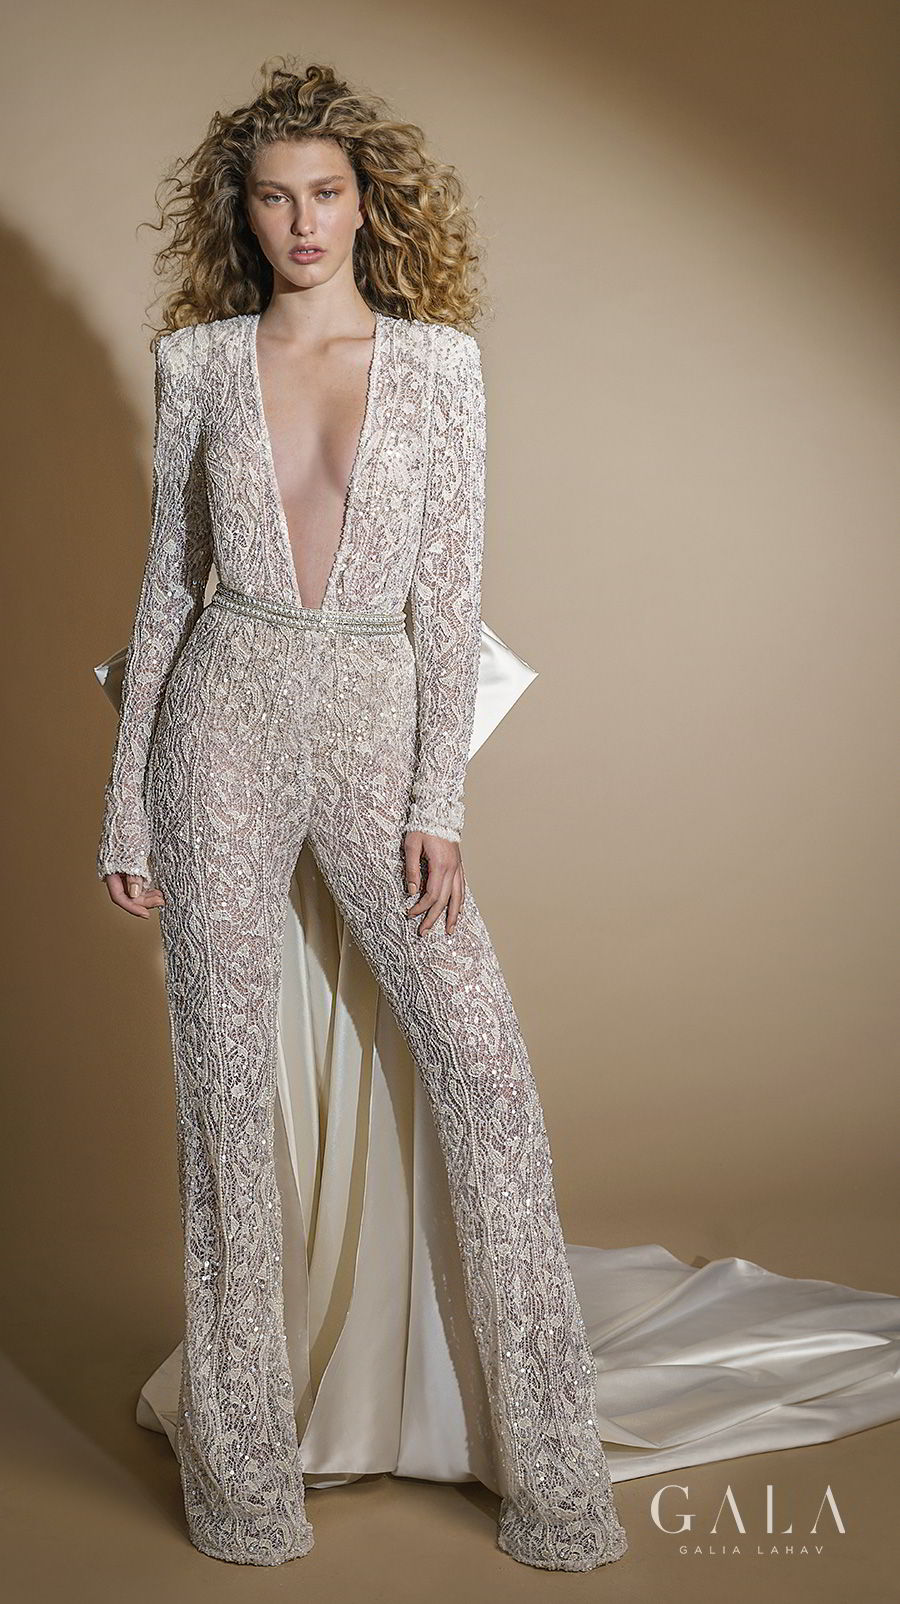 galia lahav gala 2019 bridal long sleeves deep plunging v neck full embellishment glamorous modern sexy chic jumpsuit wedding dress keyhole back chapel train (109) mv